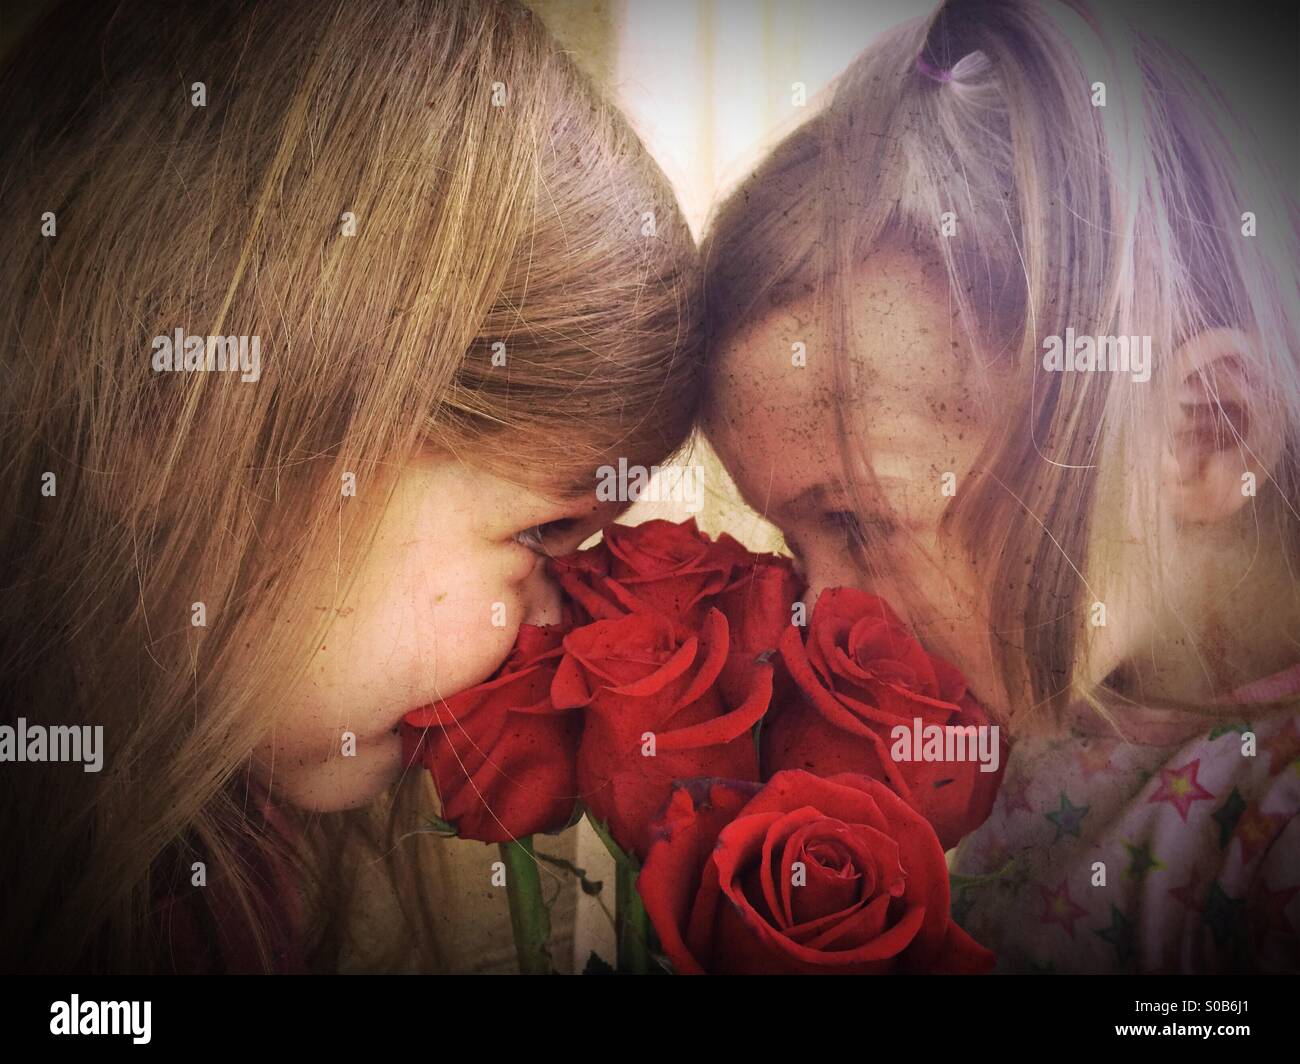 Sisters with Roses - Stock Image